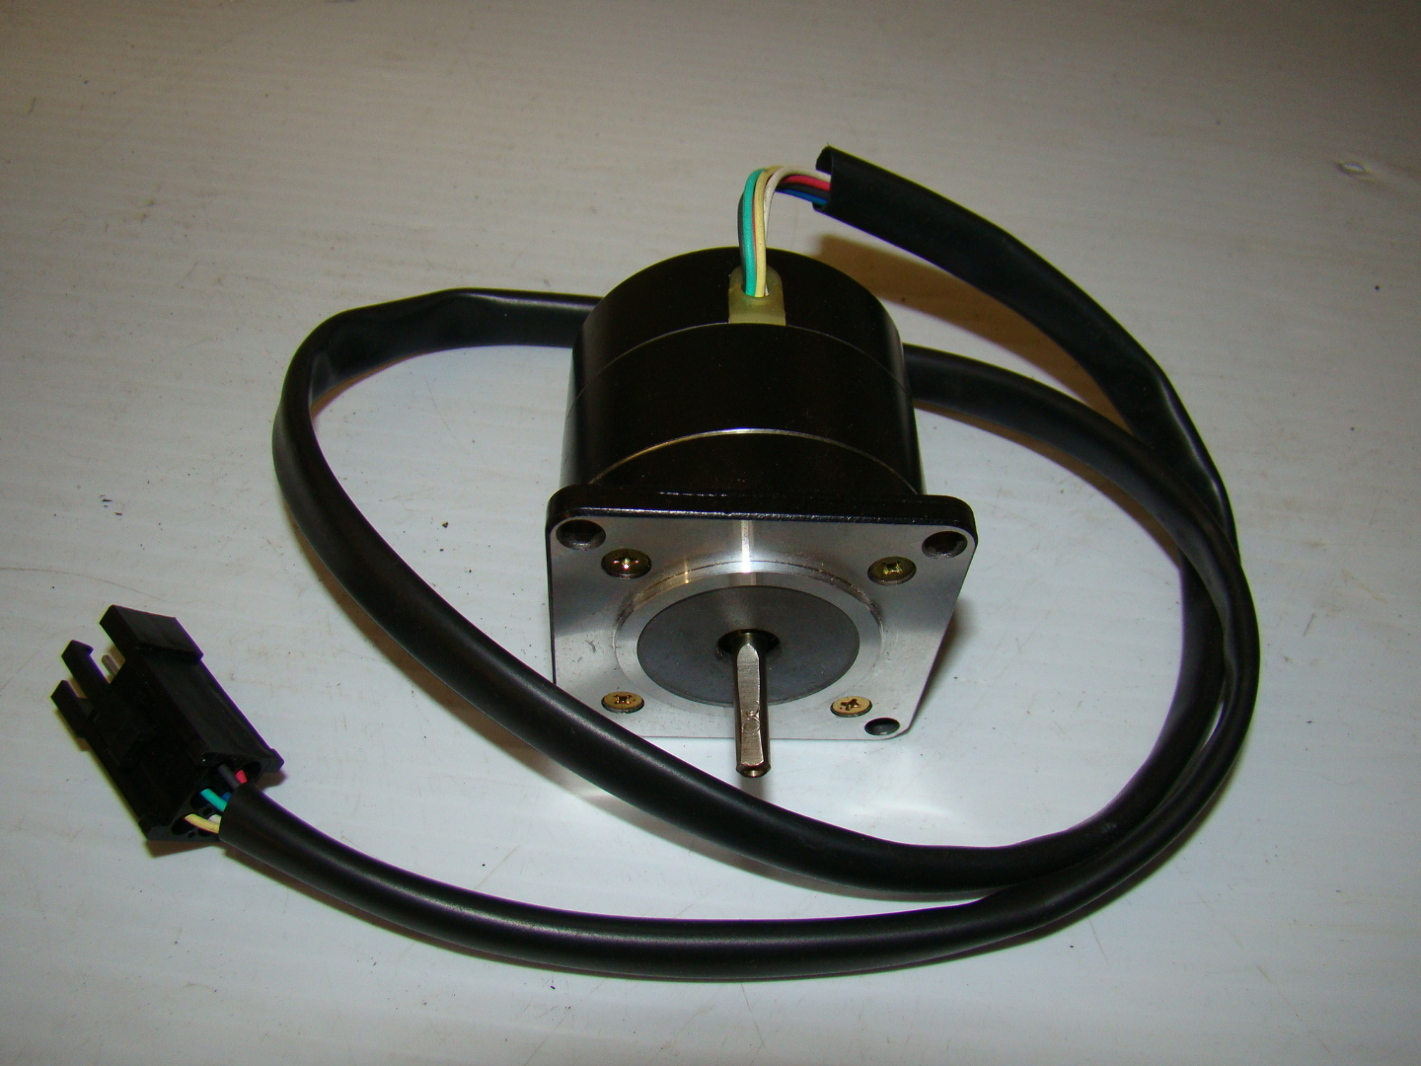 vexta 2 phase 12vdc stepping motor ph266 02 c32 ebay